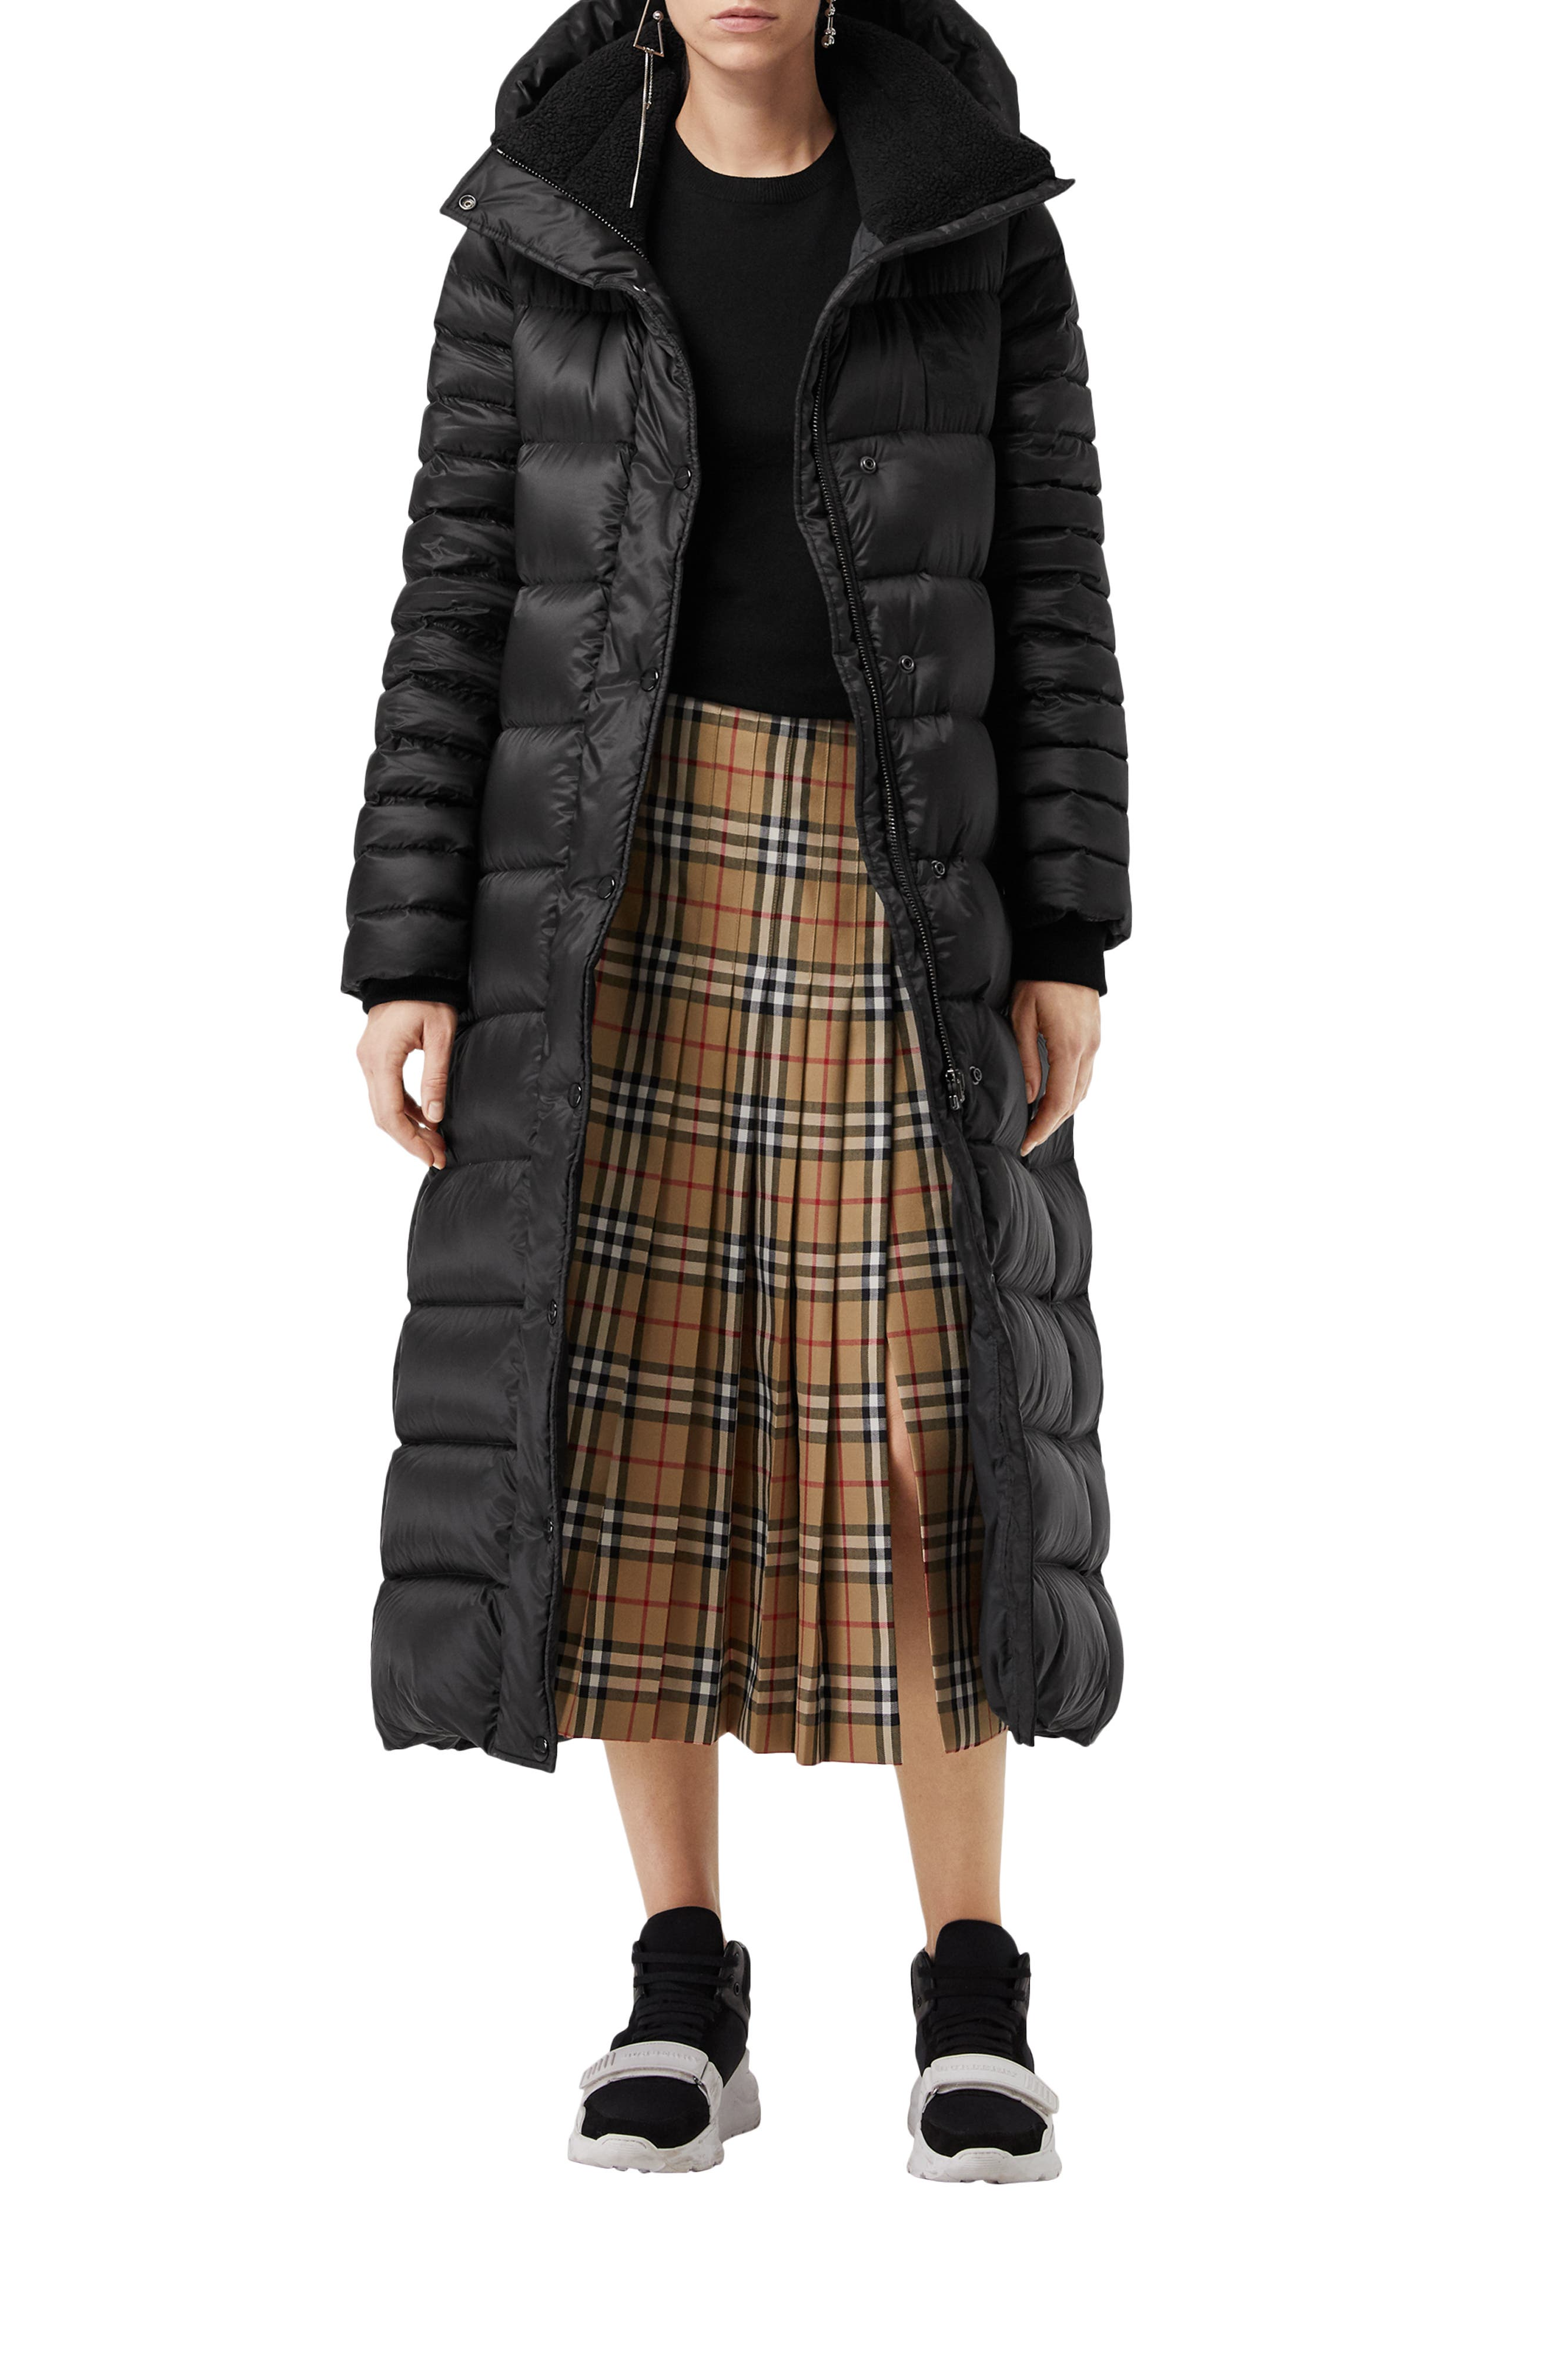 Kington Faux Fur Trim Long Down Coat,                             Alternate thumbnail 6, color,                             BLACK